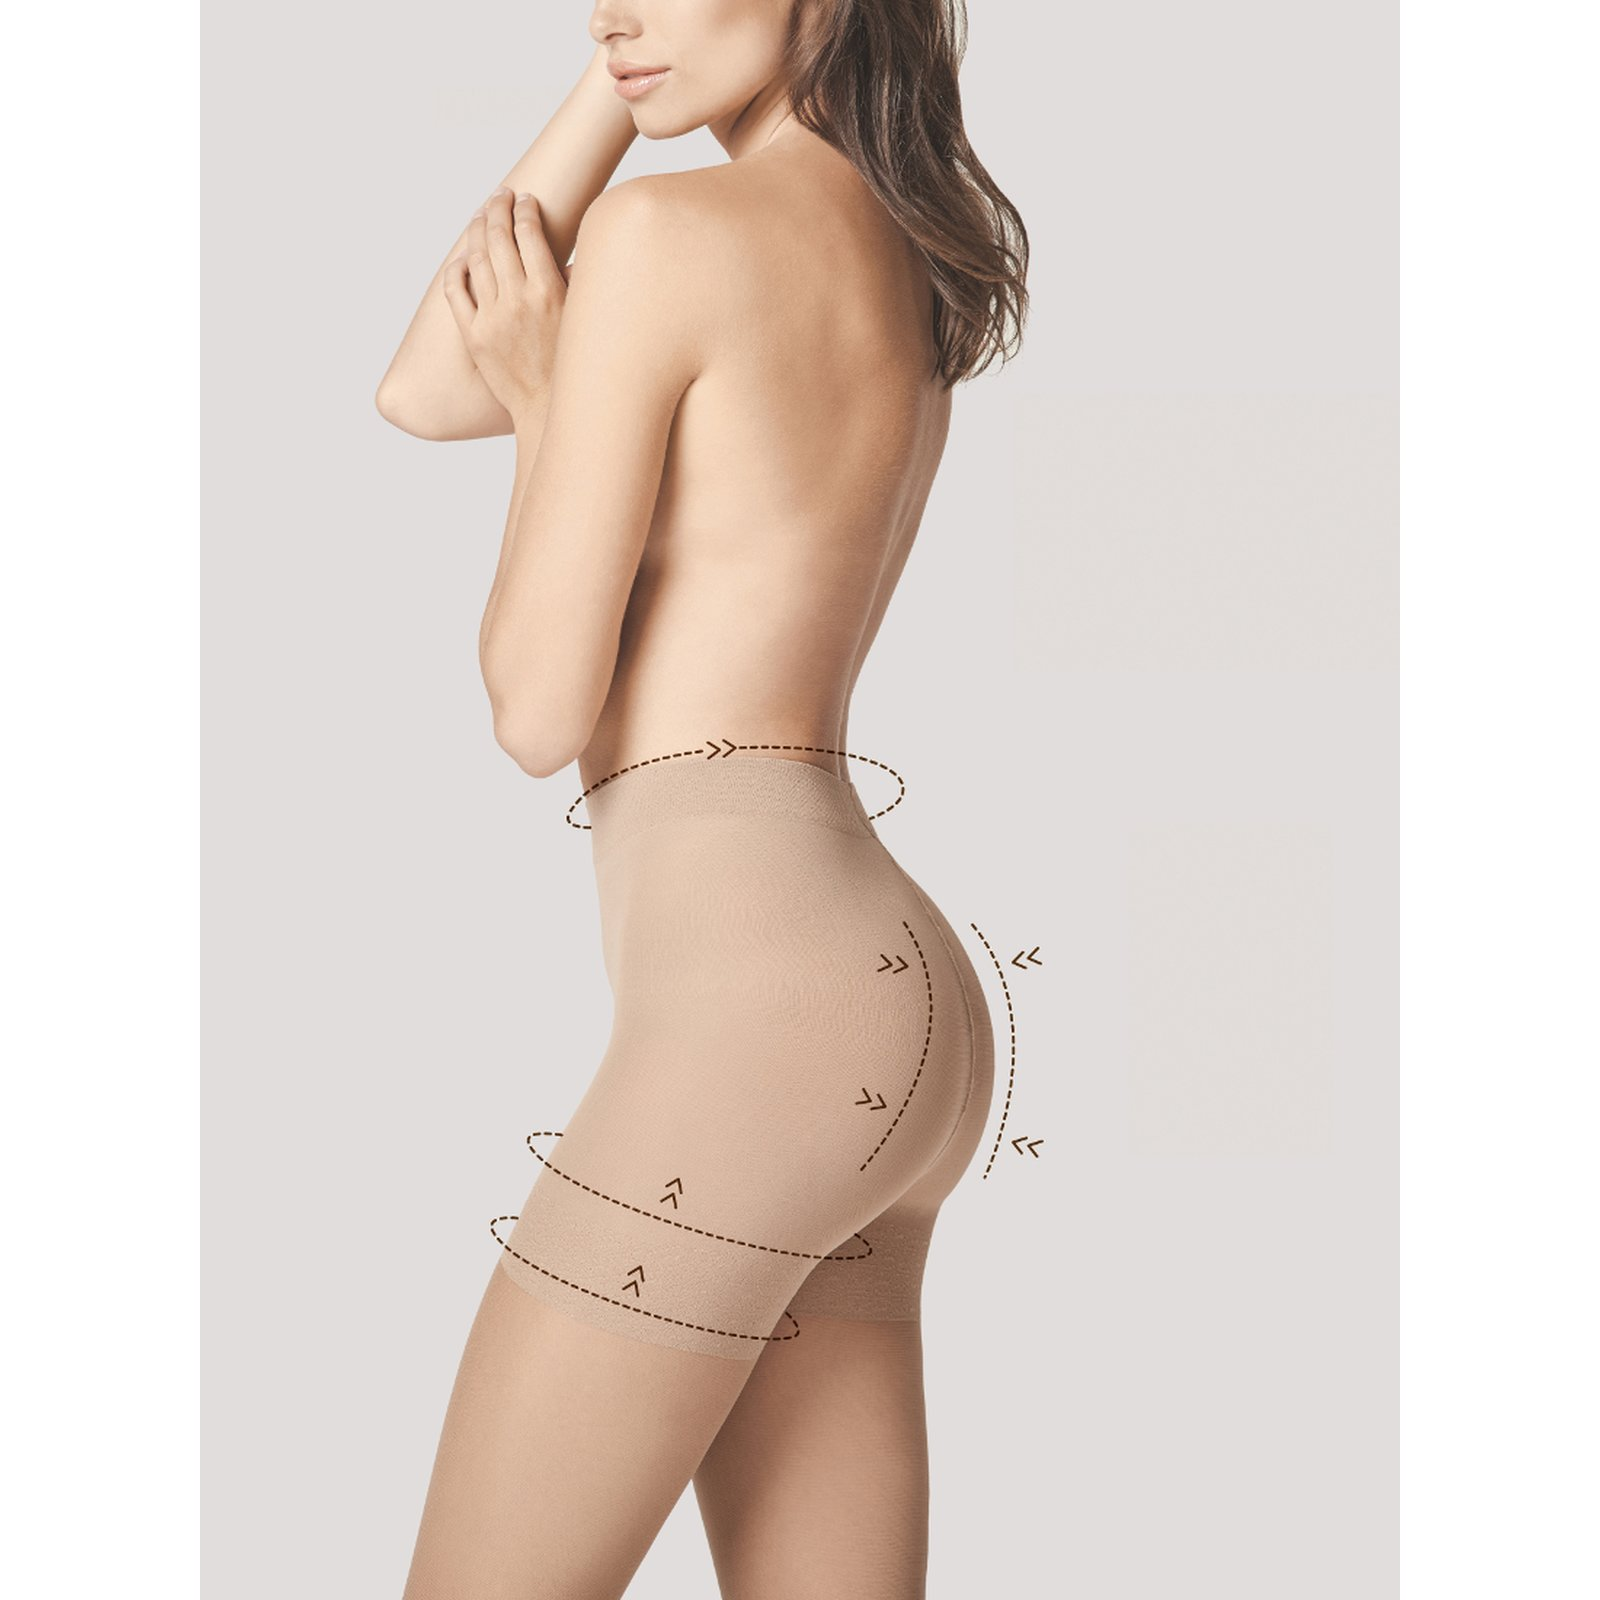 Fiore Total Slim Strumpfhosen 20den natural S - 2